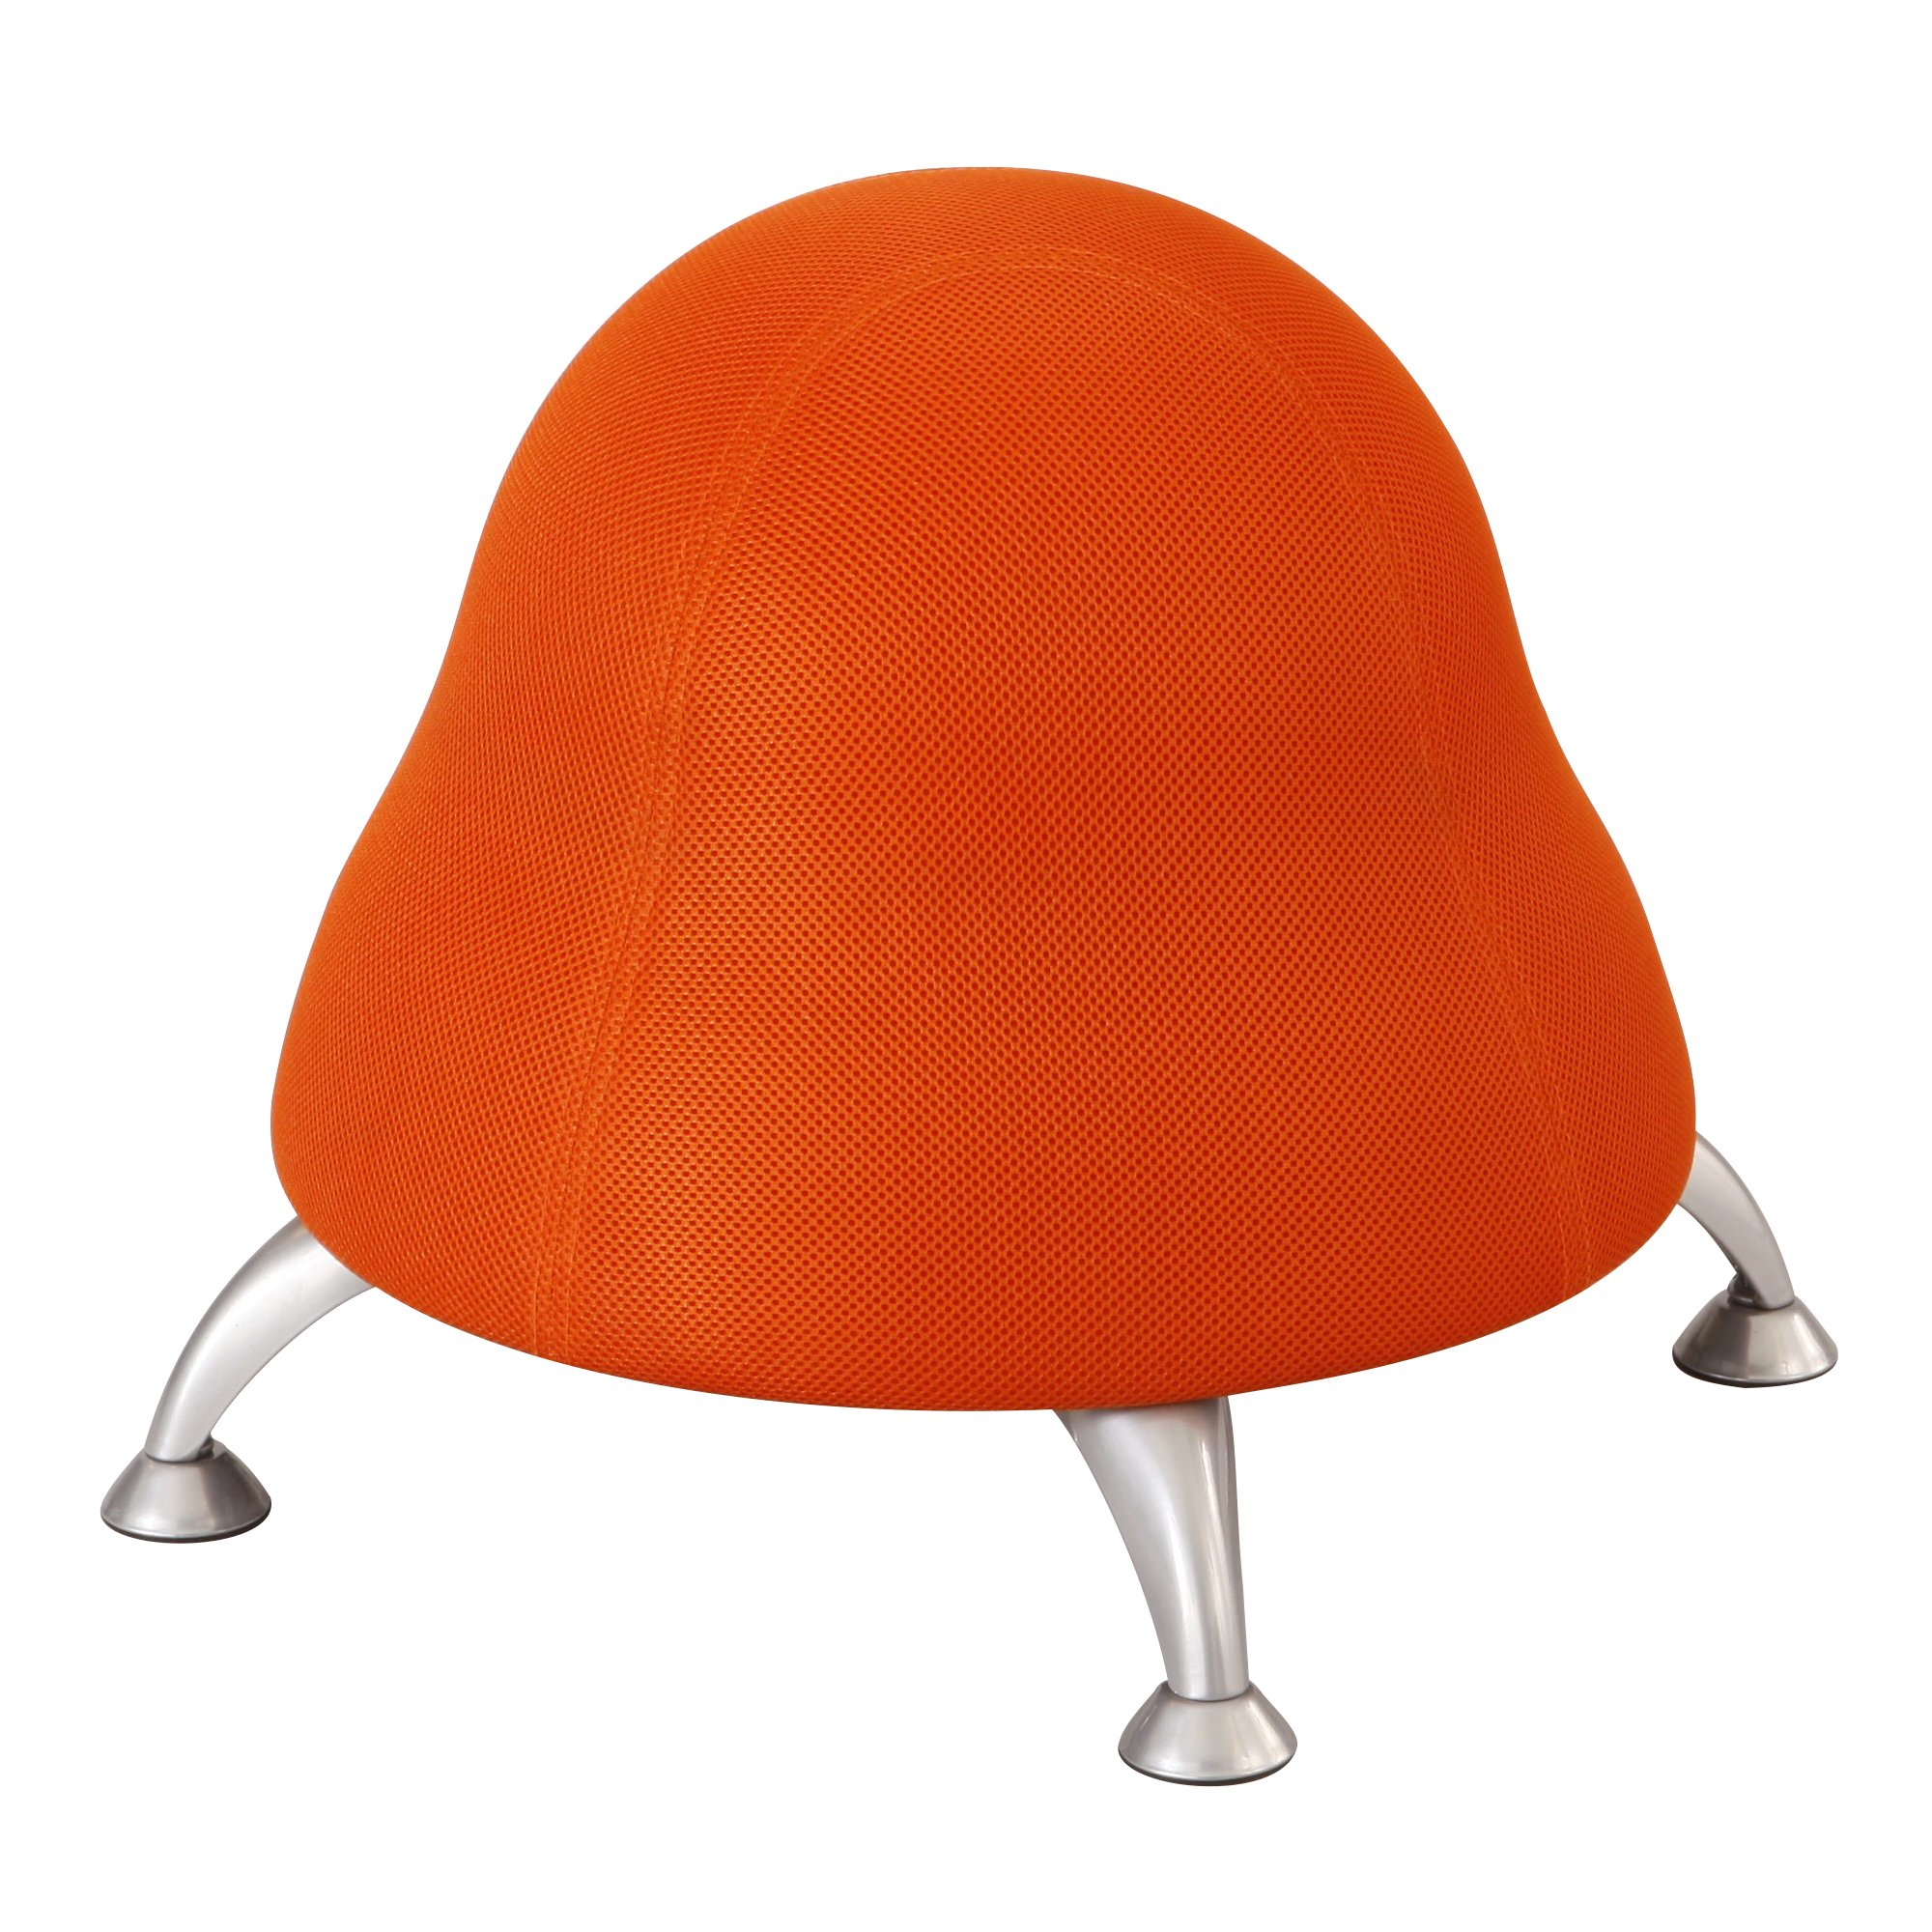 Safco Products 4755OR Polyester Mesh Runtz Ball Chair, Orange